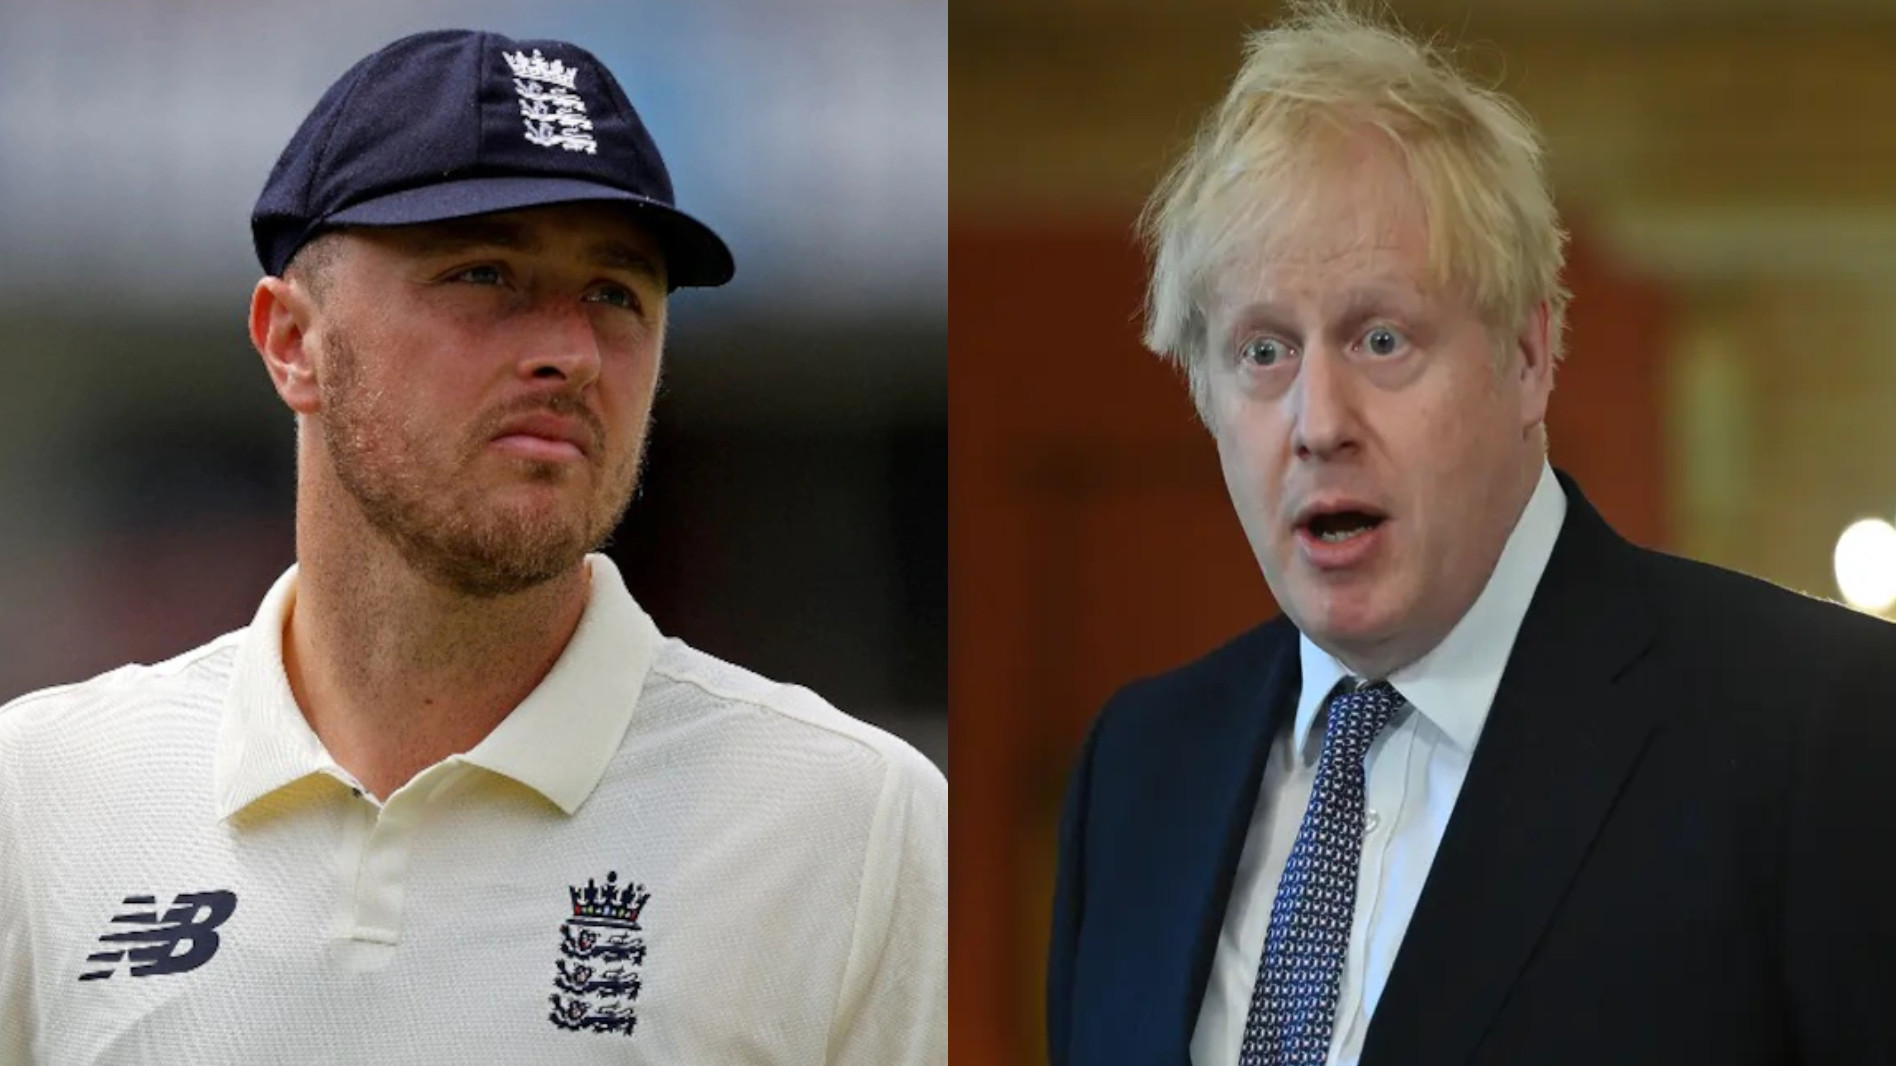 UK PM Boris Johnson supports comments that called ECB's suspension of Robinson 'over the top'